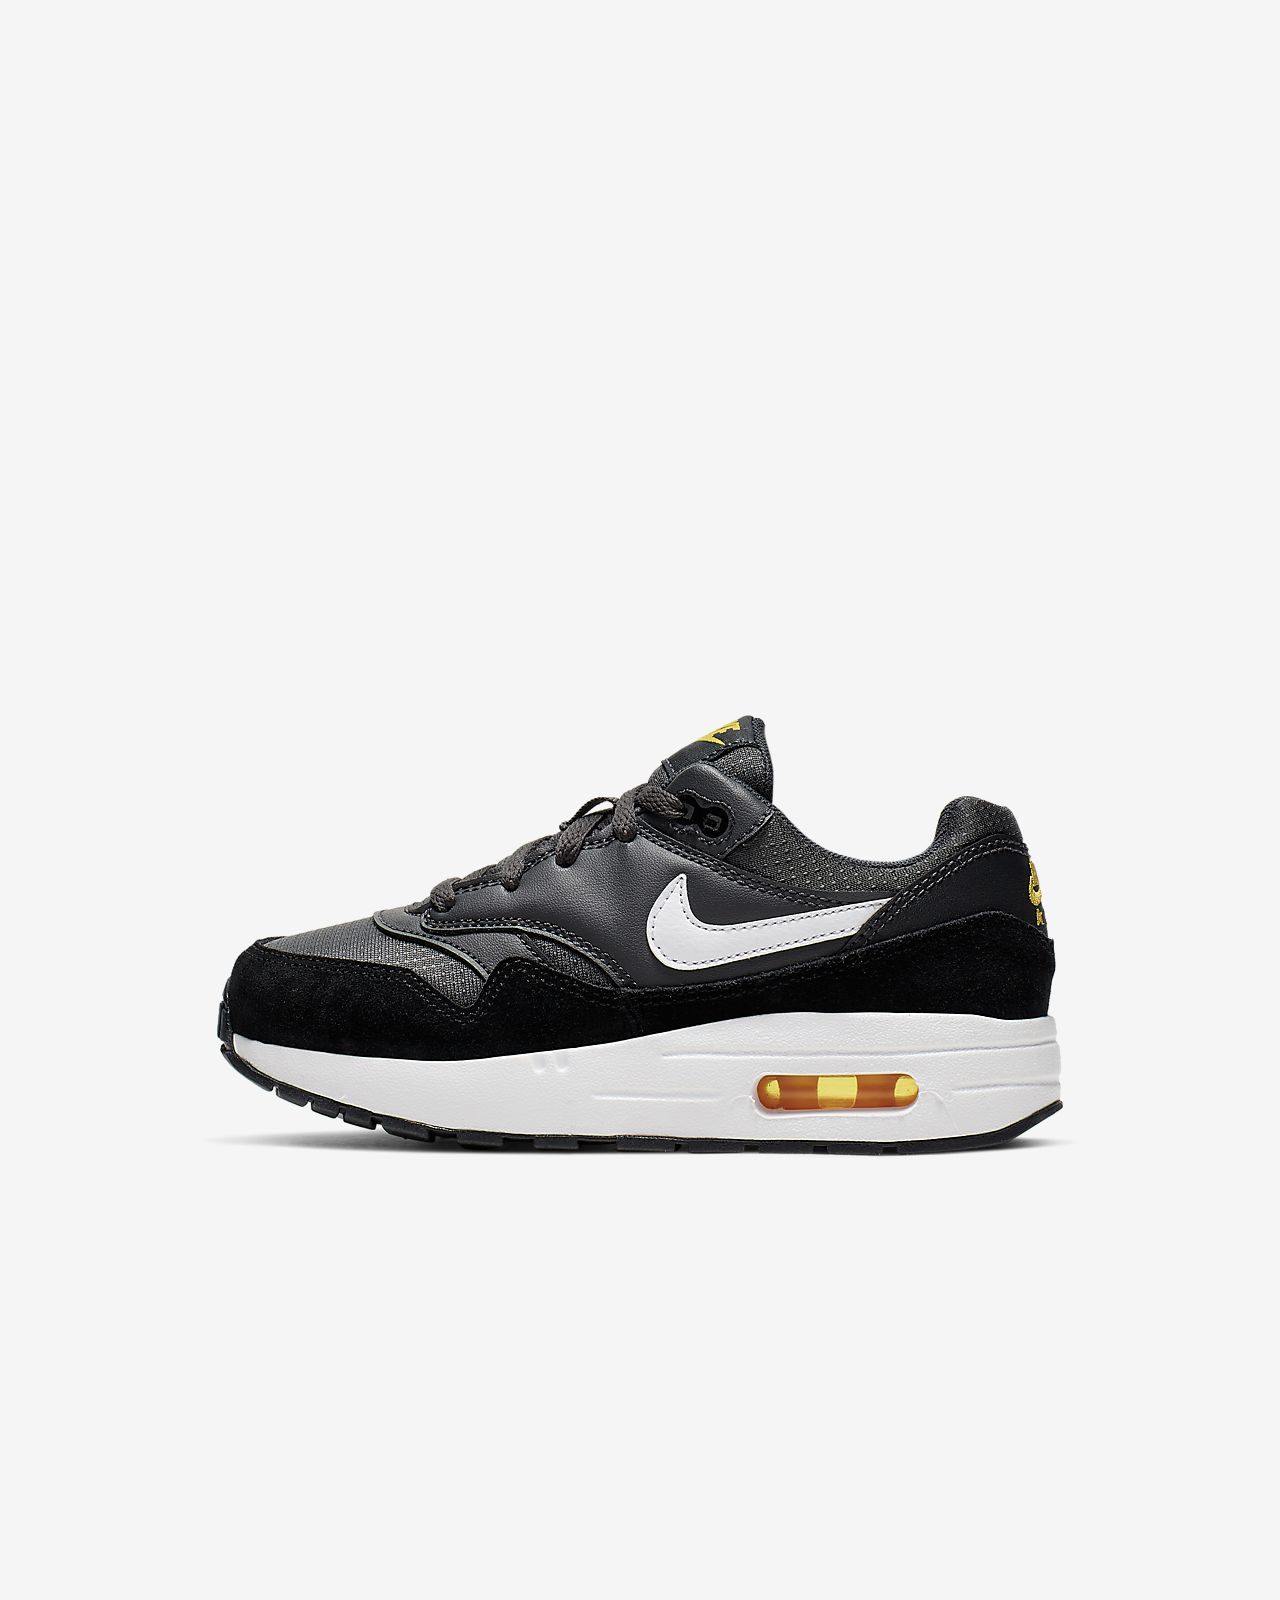 new product 7c877 9d41b ... Nike Air Max 1 Little Kids  Shoe